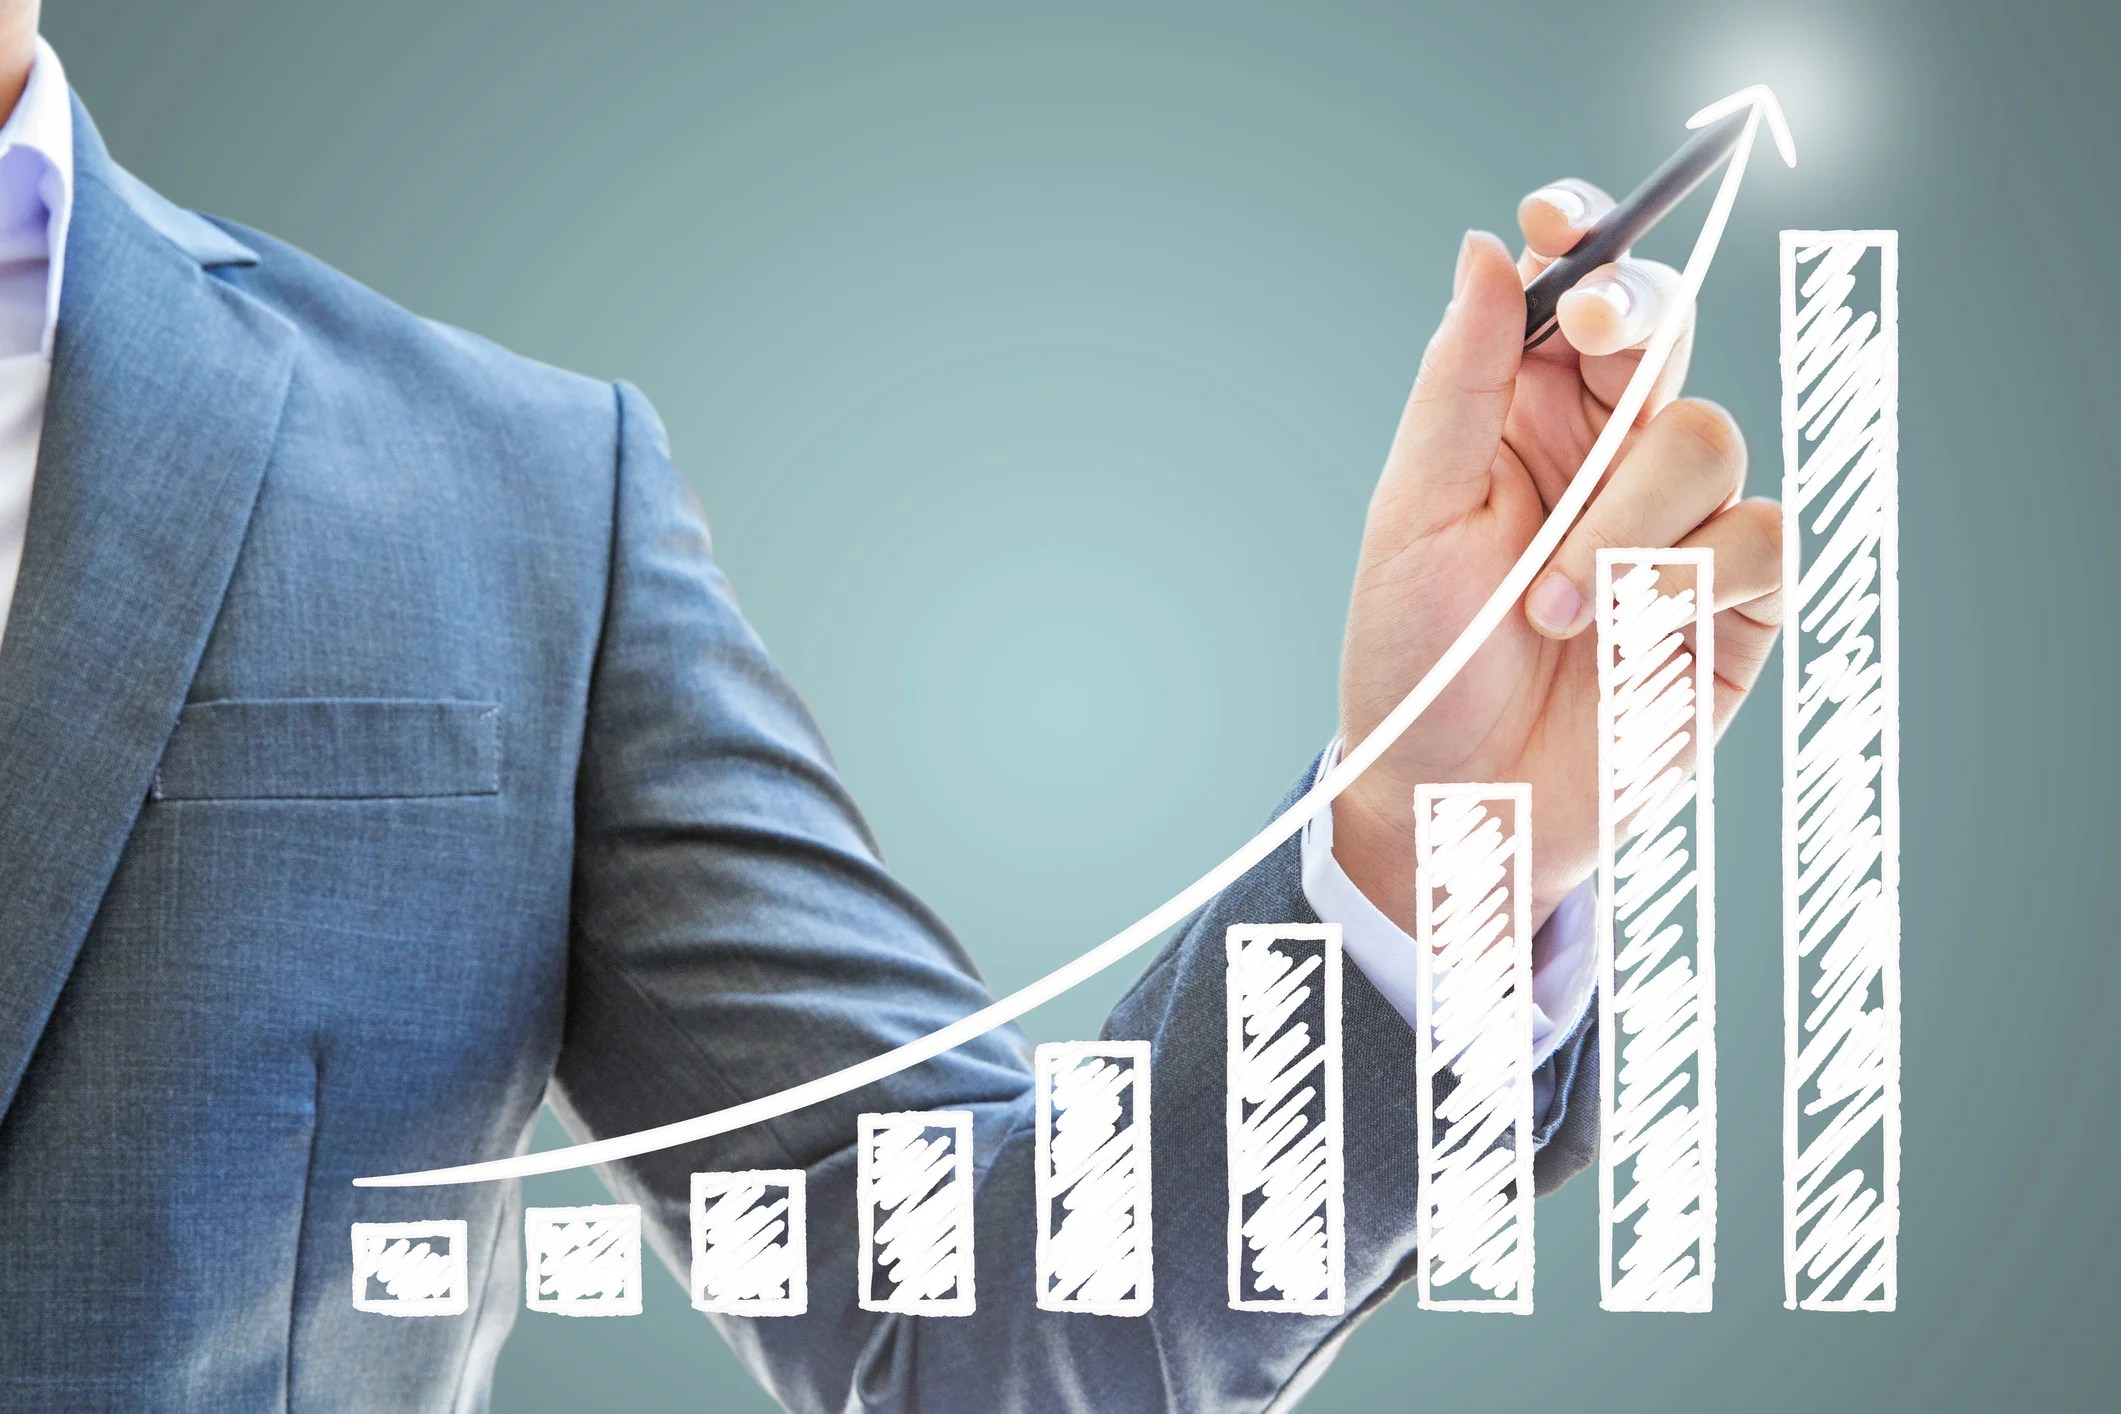 2 Stocks With Strong Double Digit Dividend Growth The